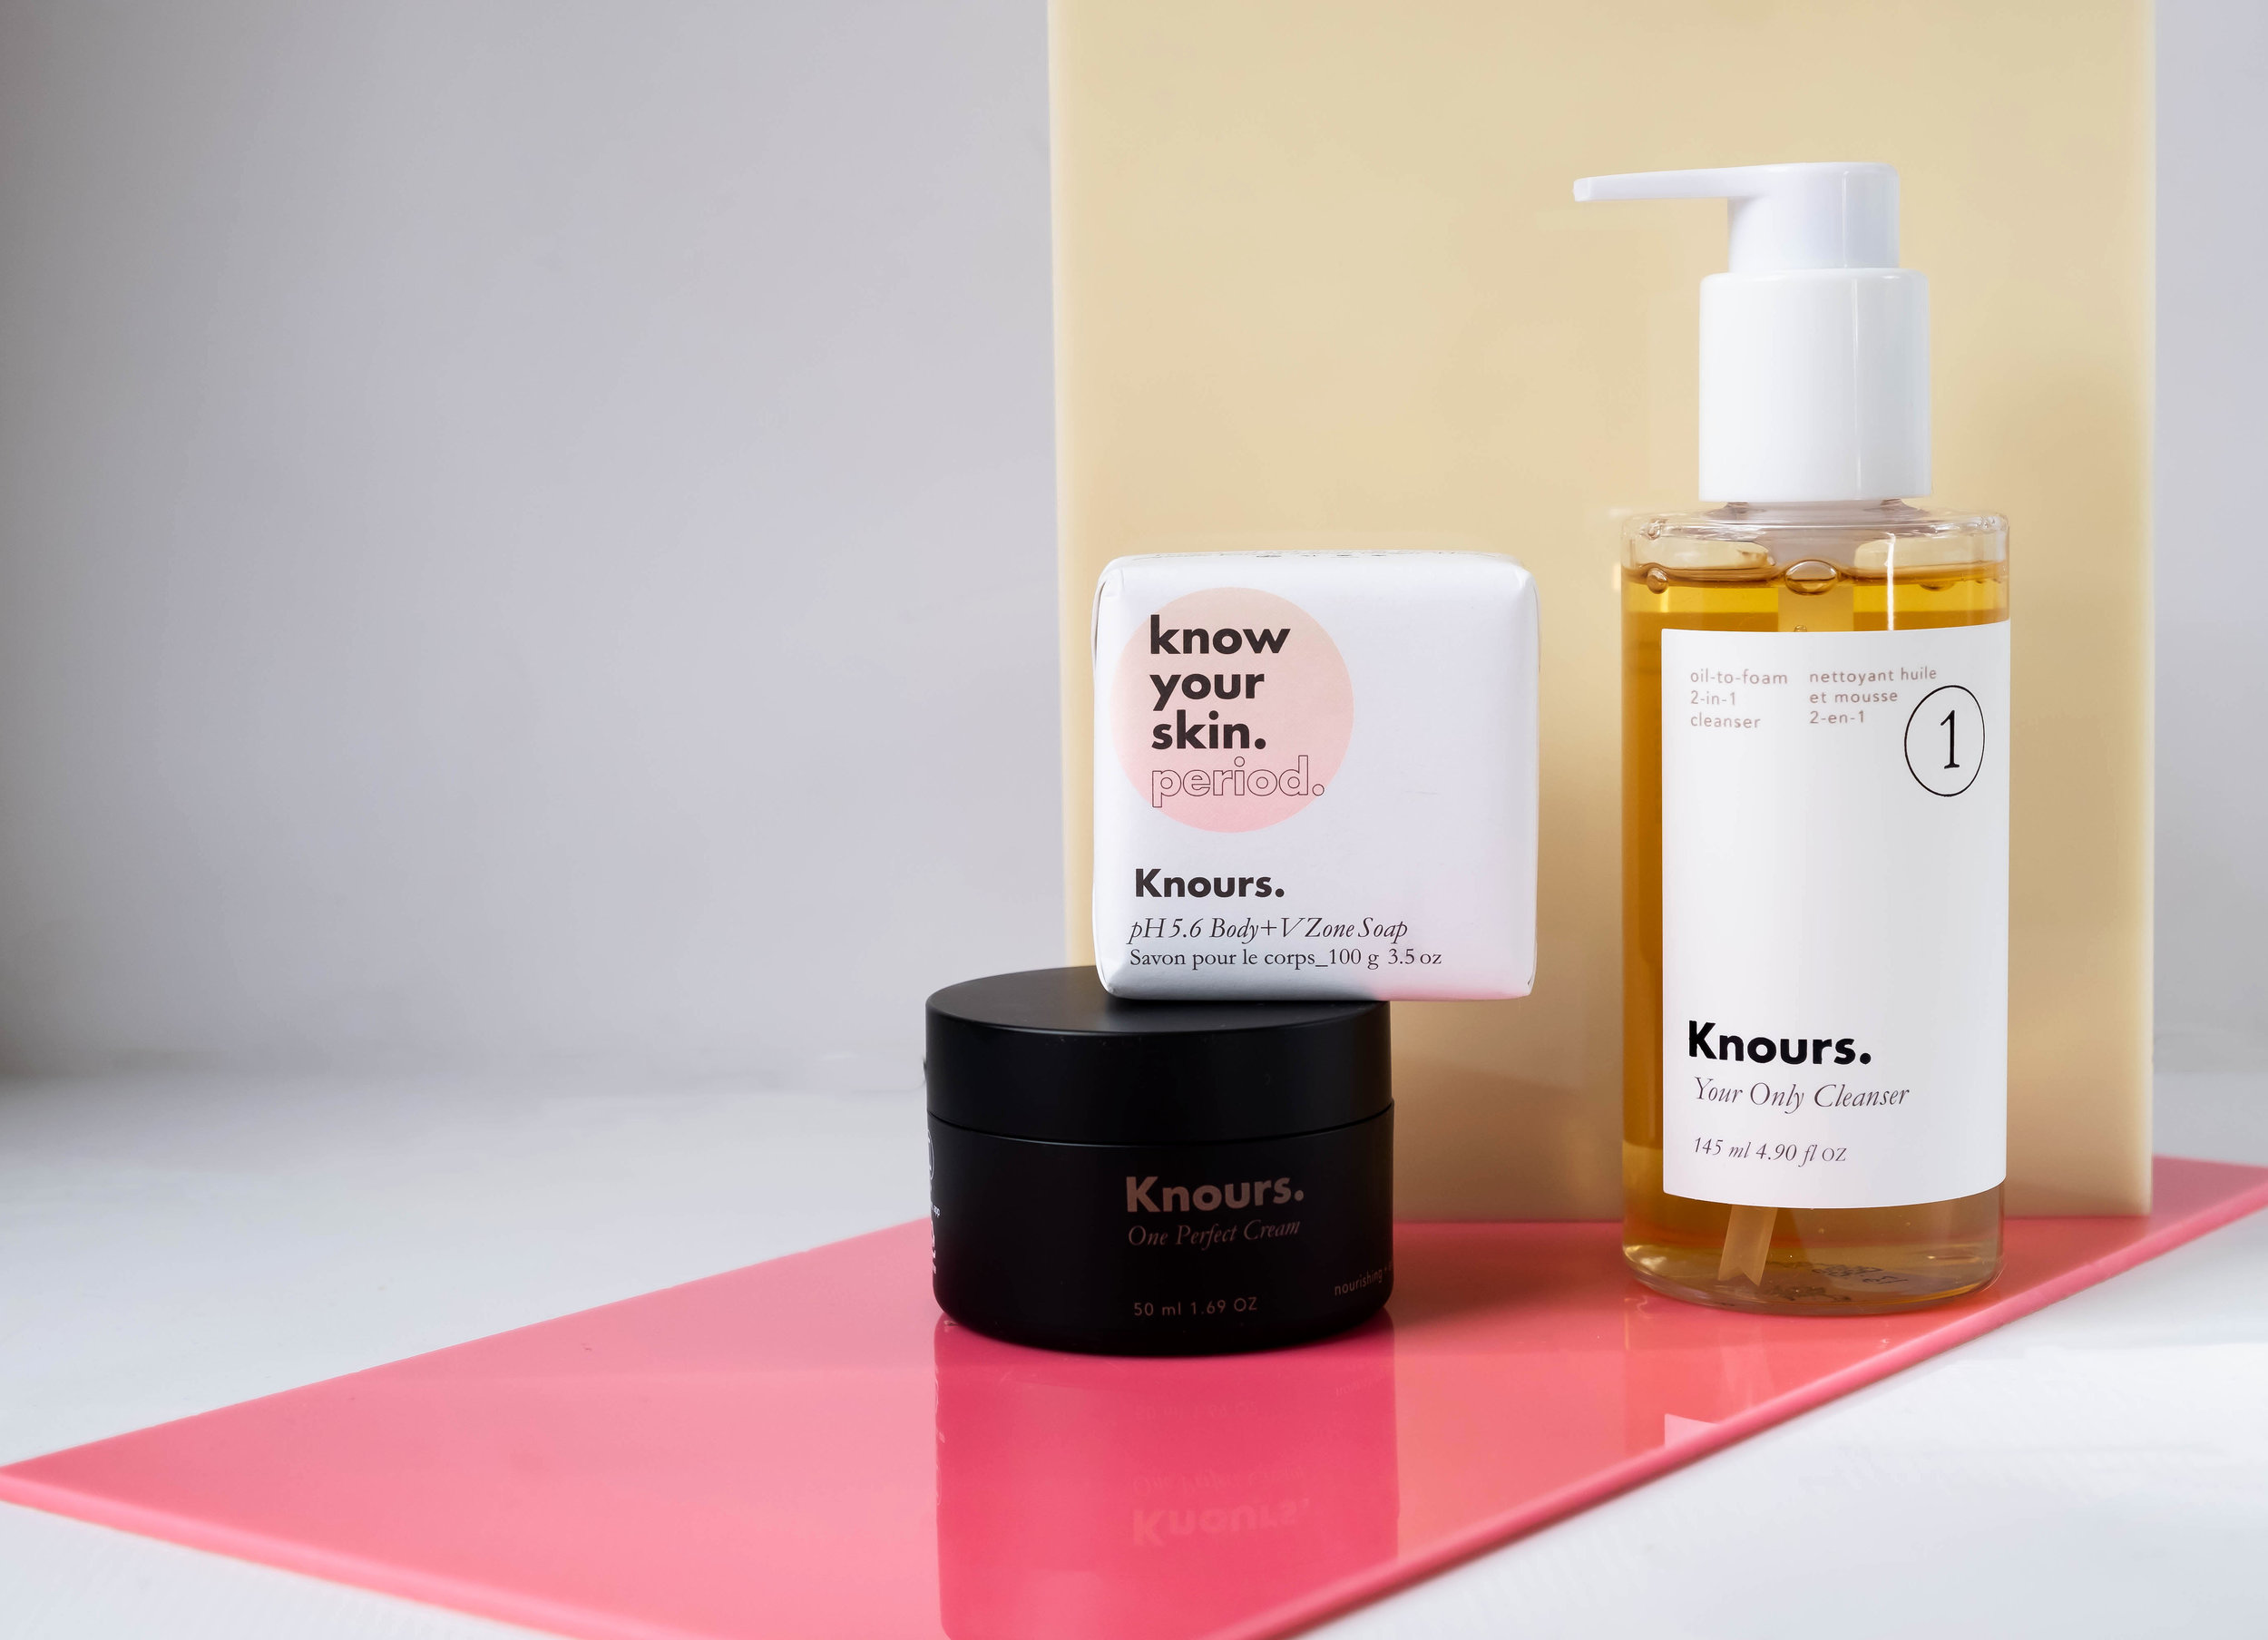 ROSE & IVY Journal Meet Knours. A Beauty Brand Doing Something Unique